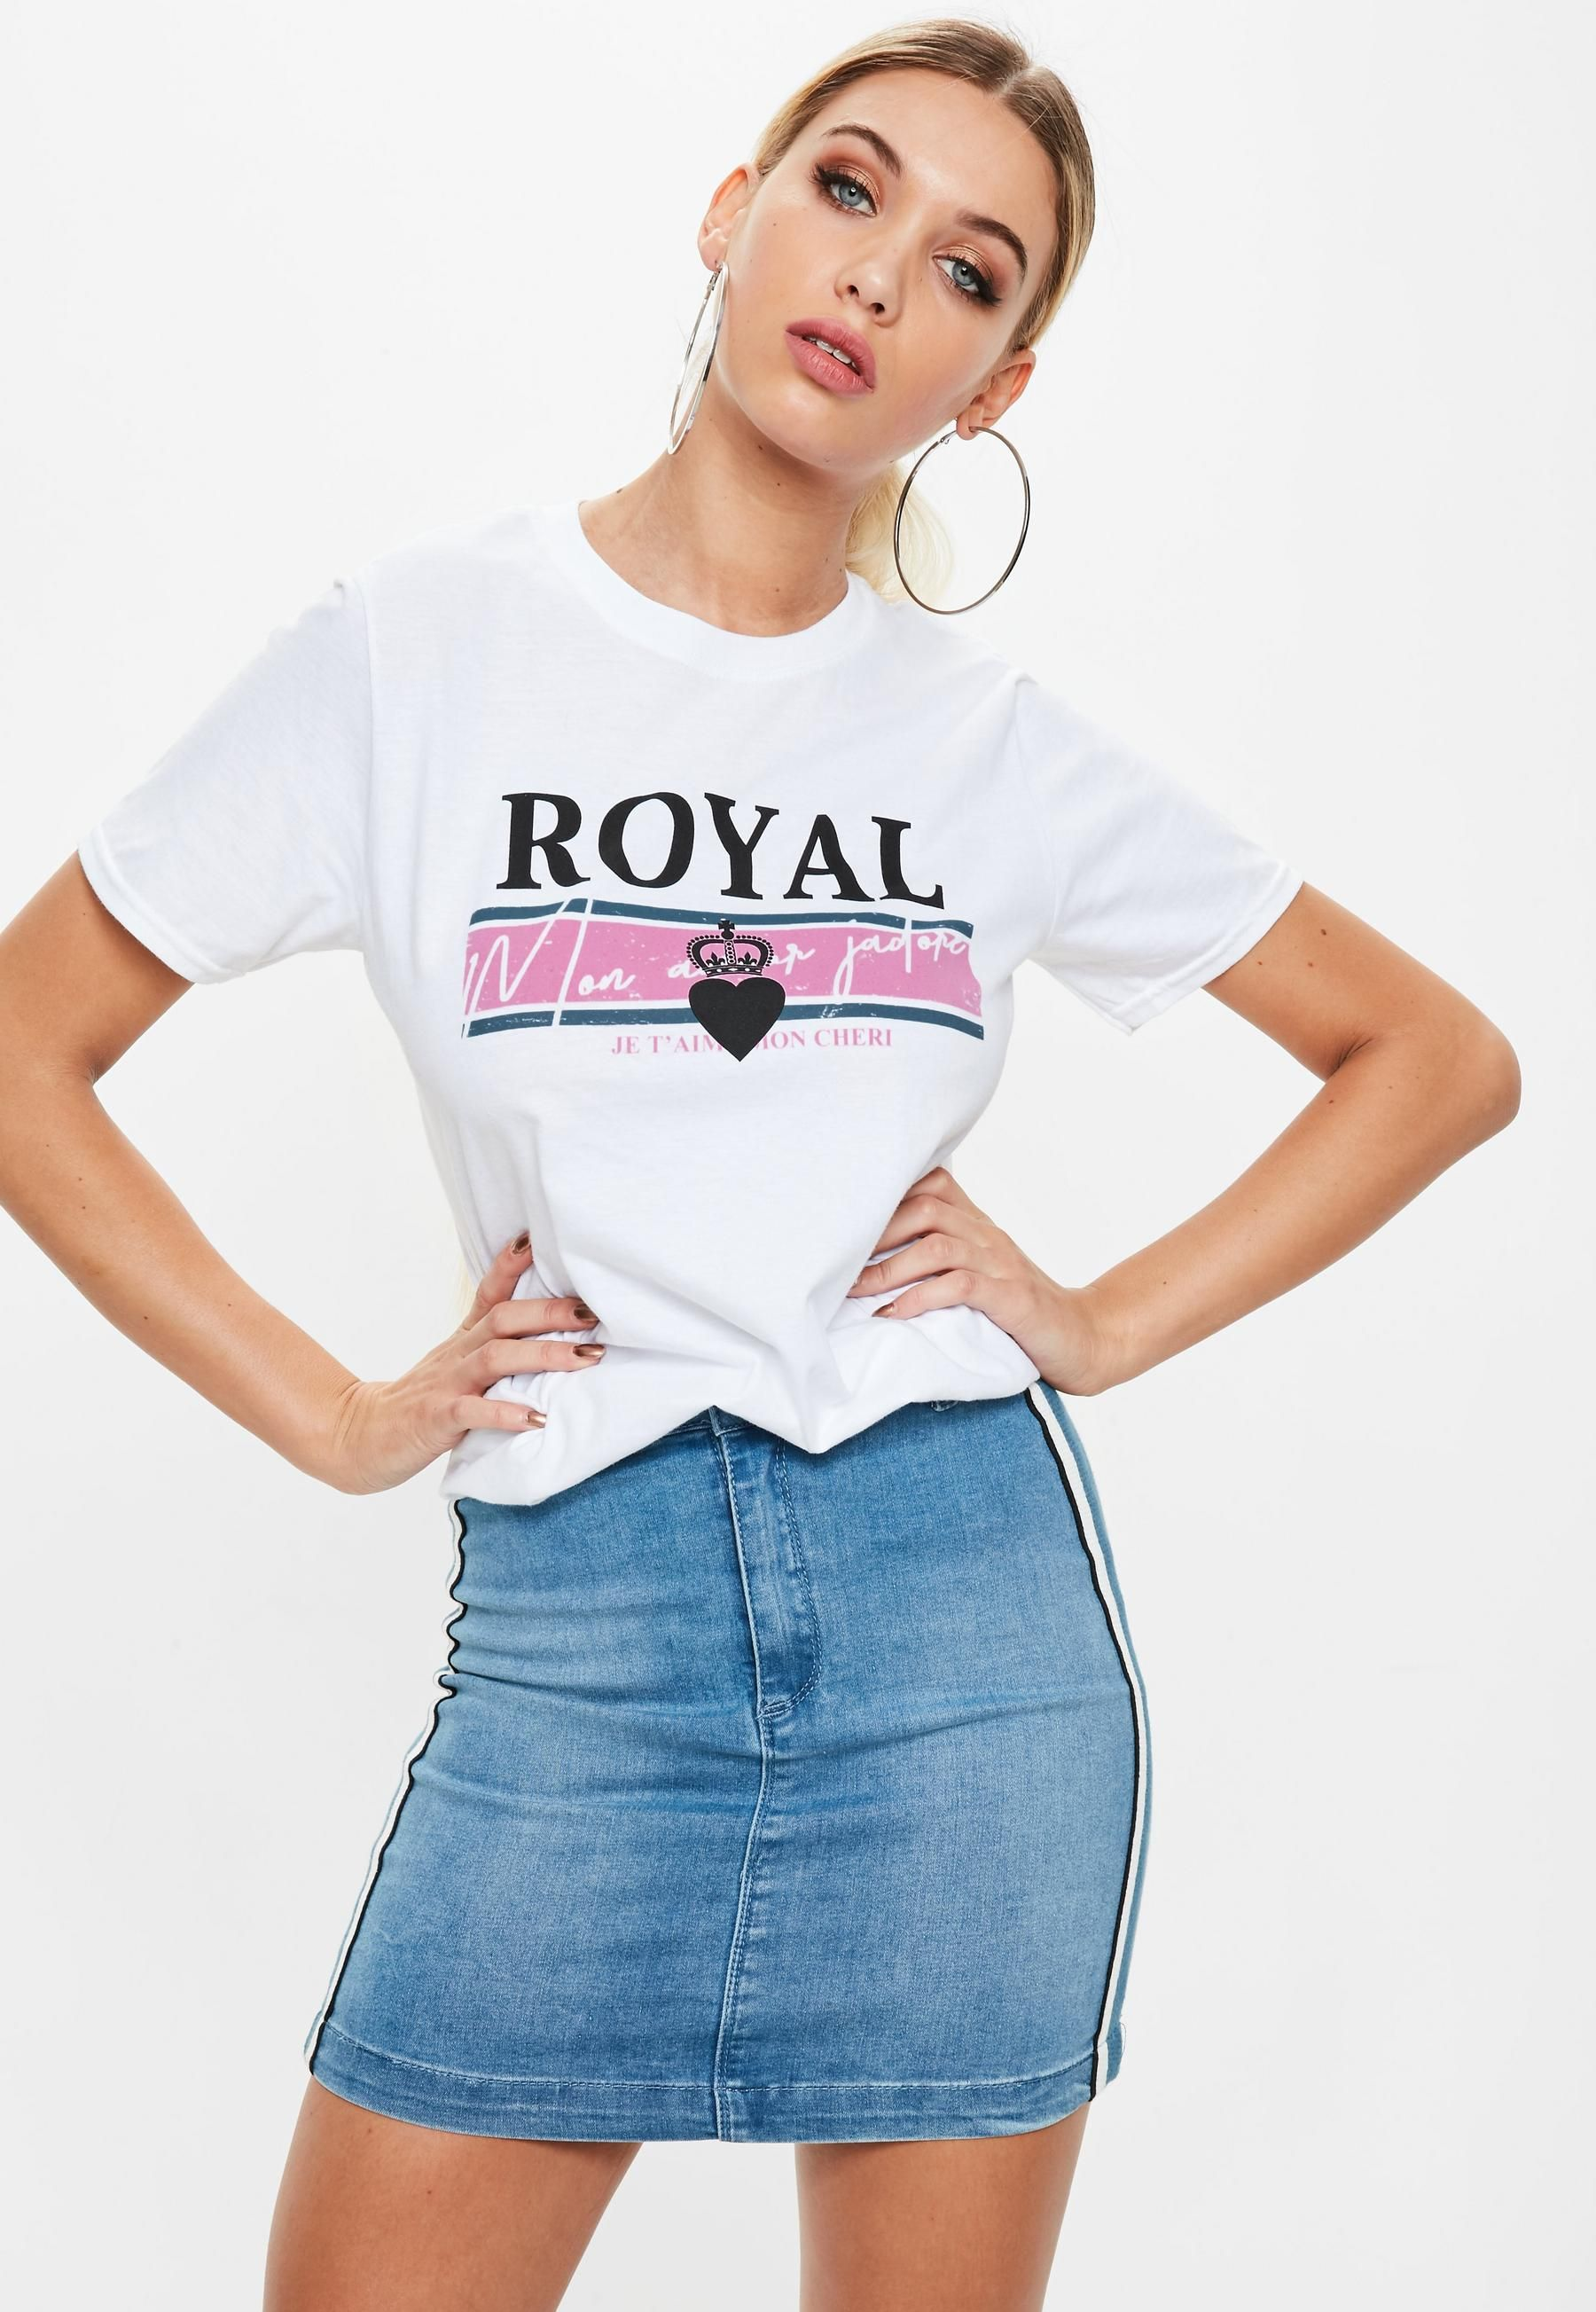 Royal T-Shirt - White Missguided Perfect Get Authentic Discount Wiki Brand New Unisex For Sale Sale Sast 21kyN9lXR